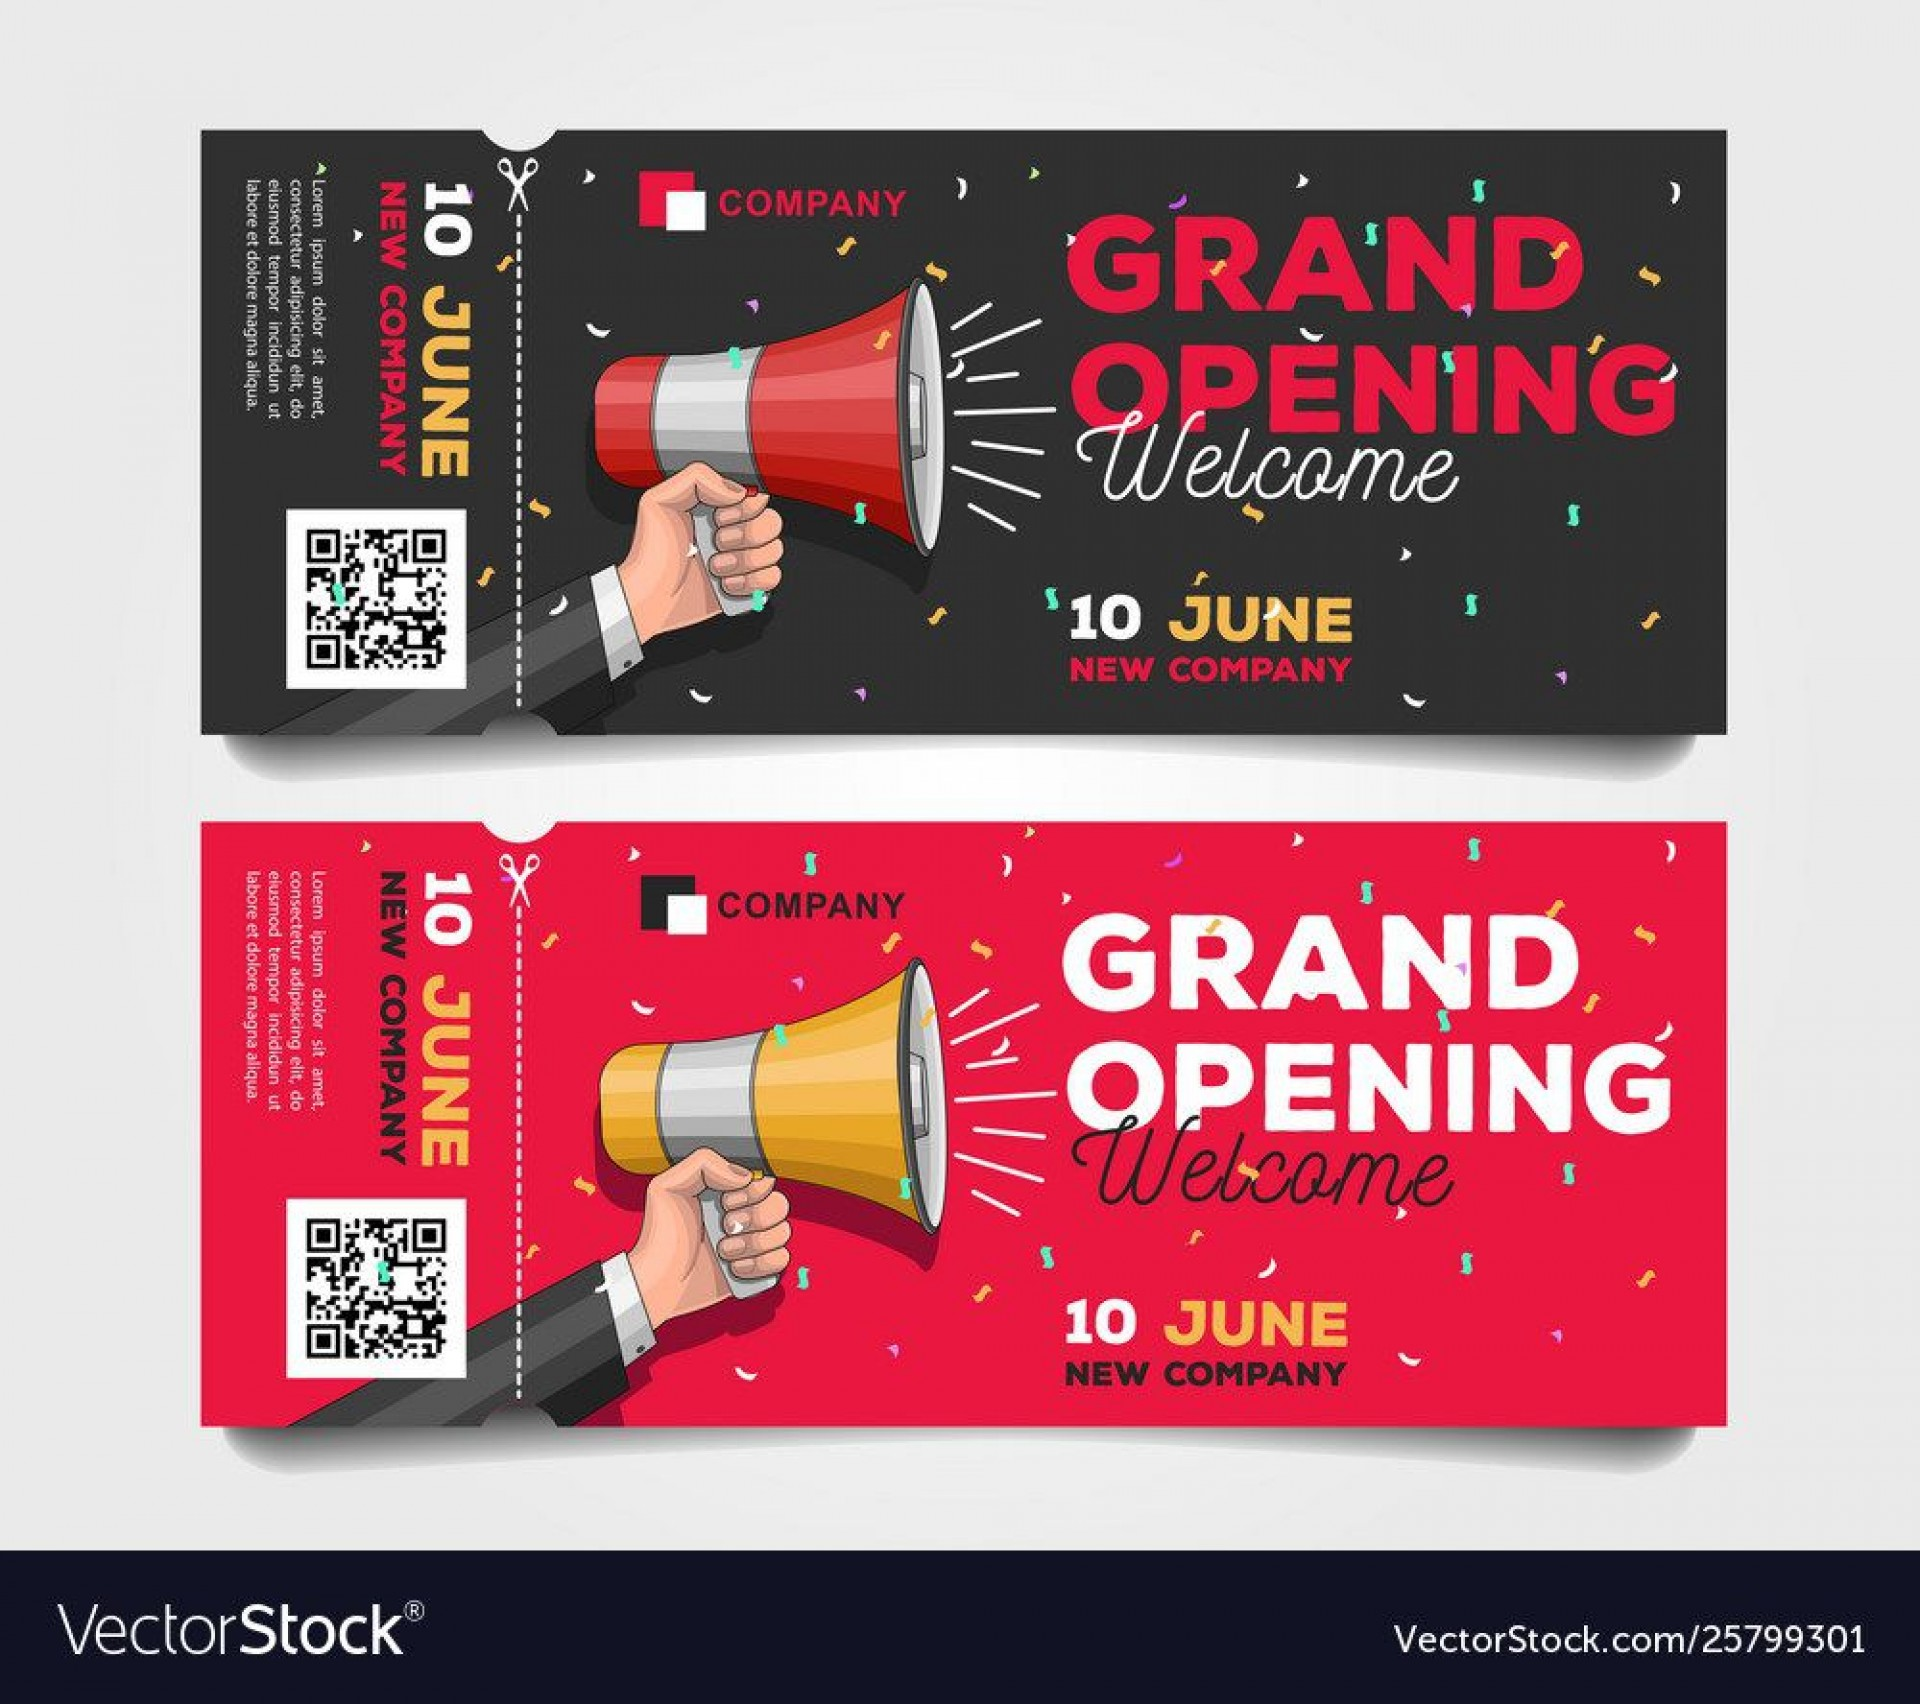 009 Archaicawful Grand Opening Flyer Template High Definition  Free Psd Busines1920